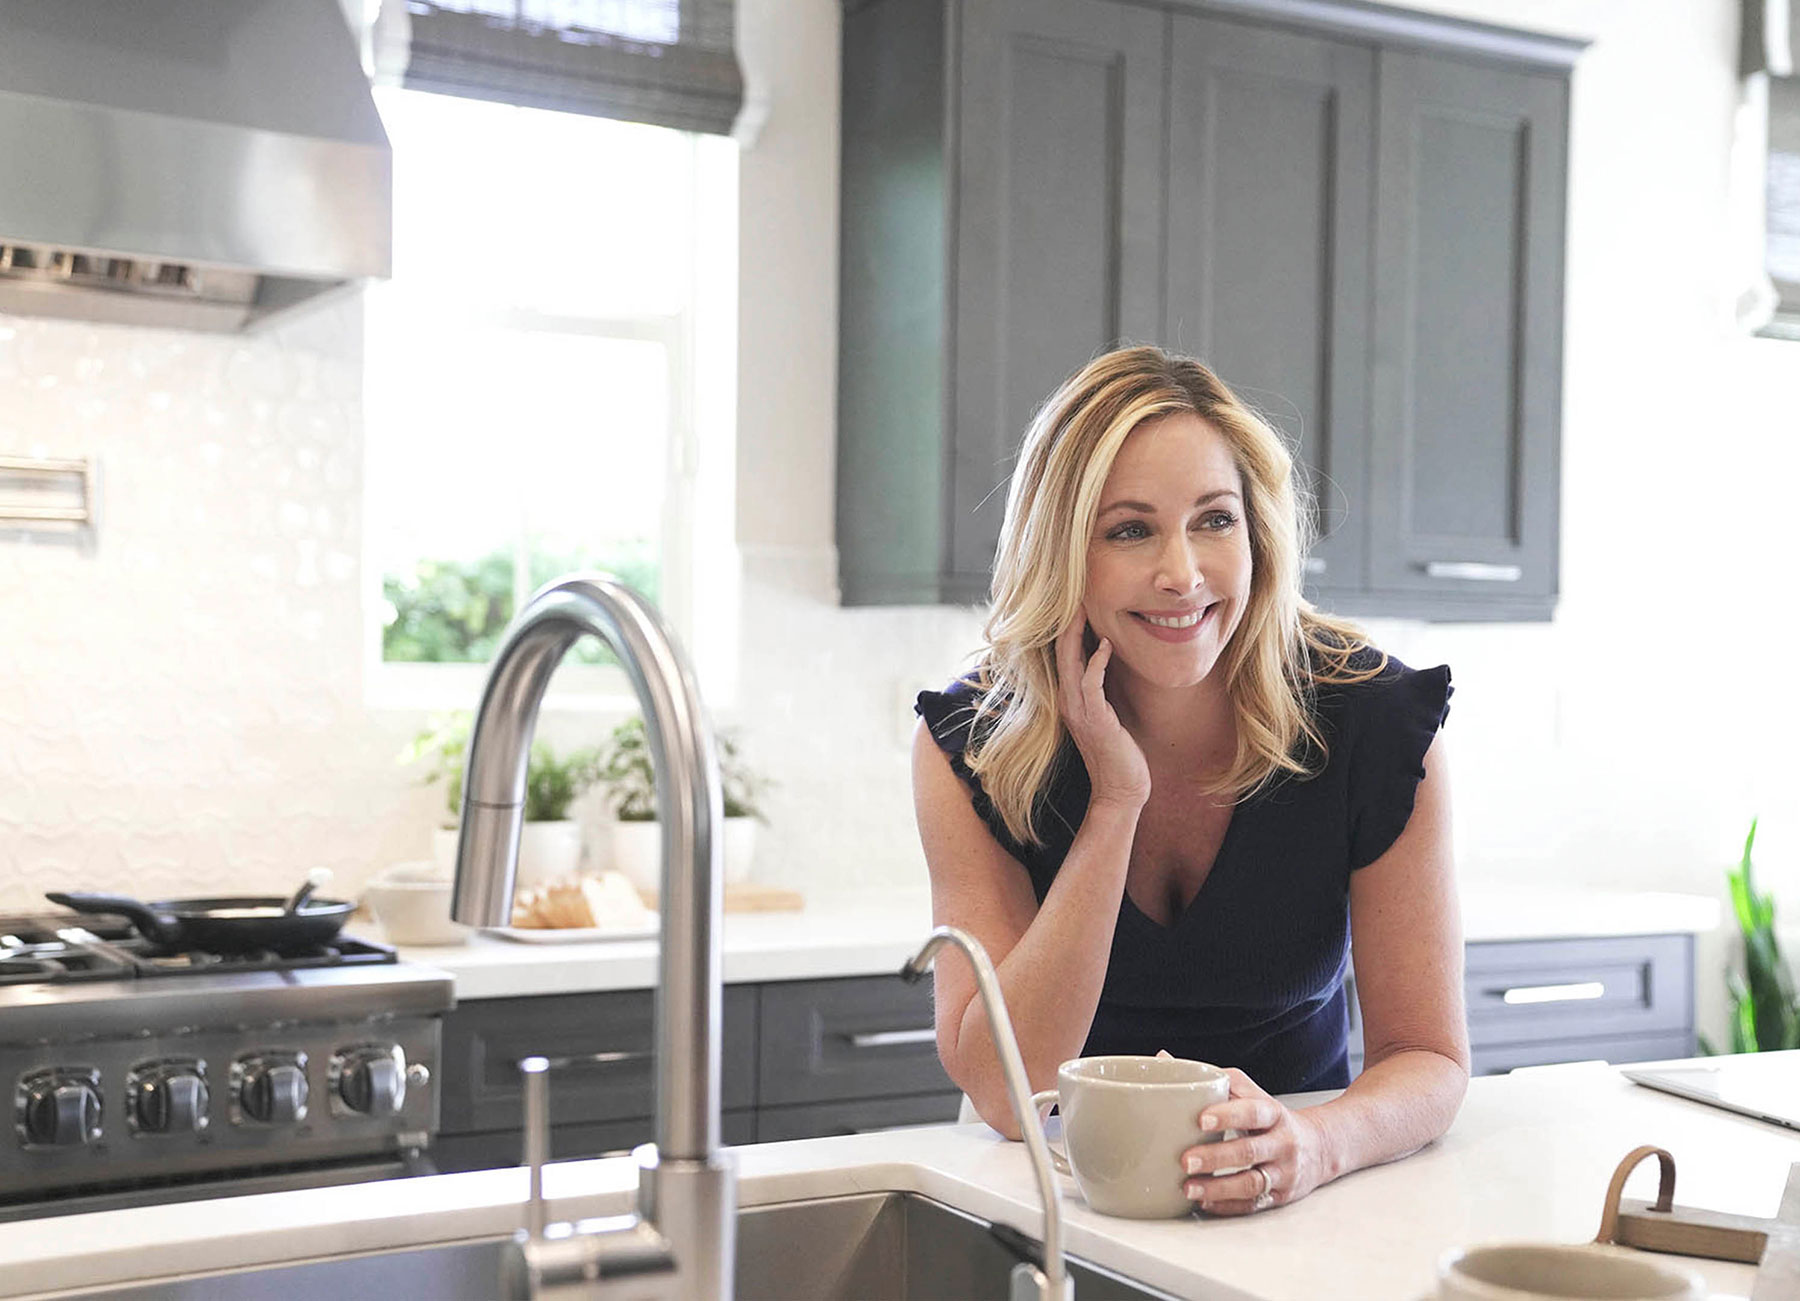 Women drinking coffee in real estate branding campaign